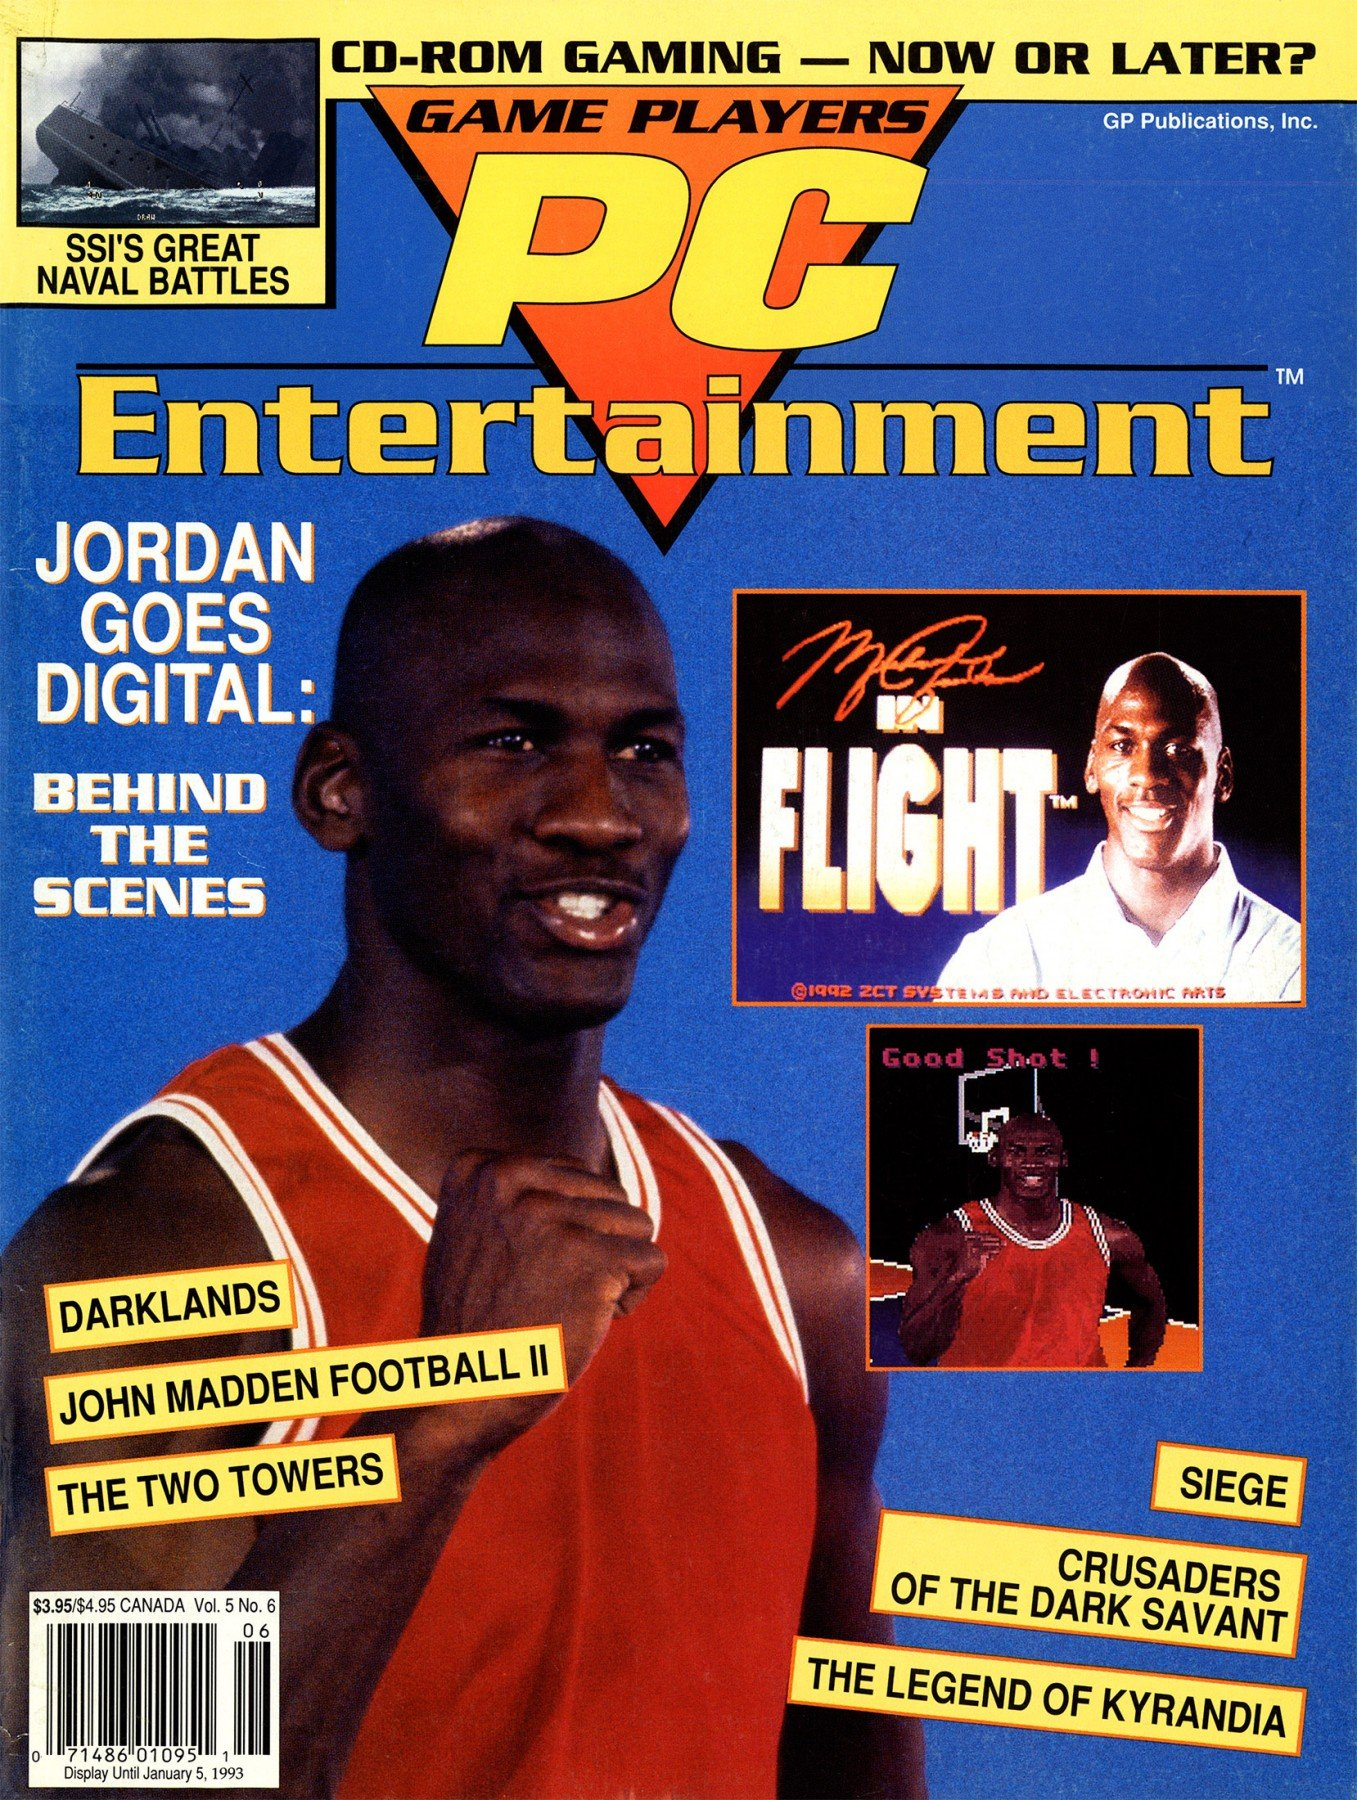 Game Players PC Entertainment Vol.5 No.6 (November/December 1992)